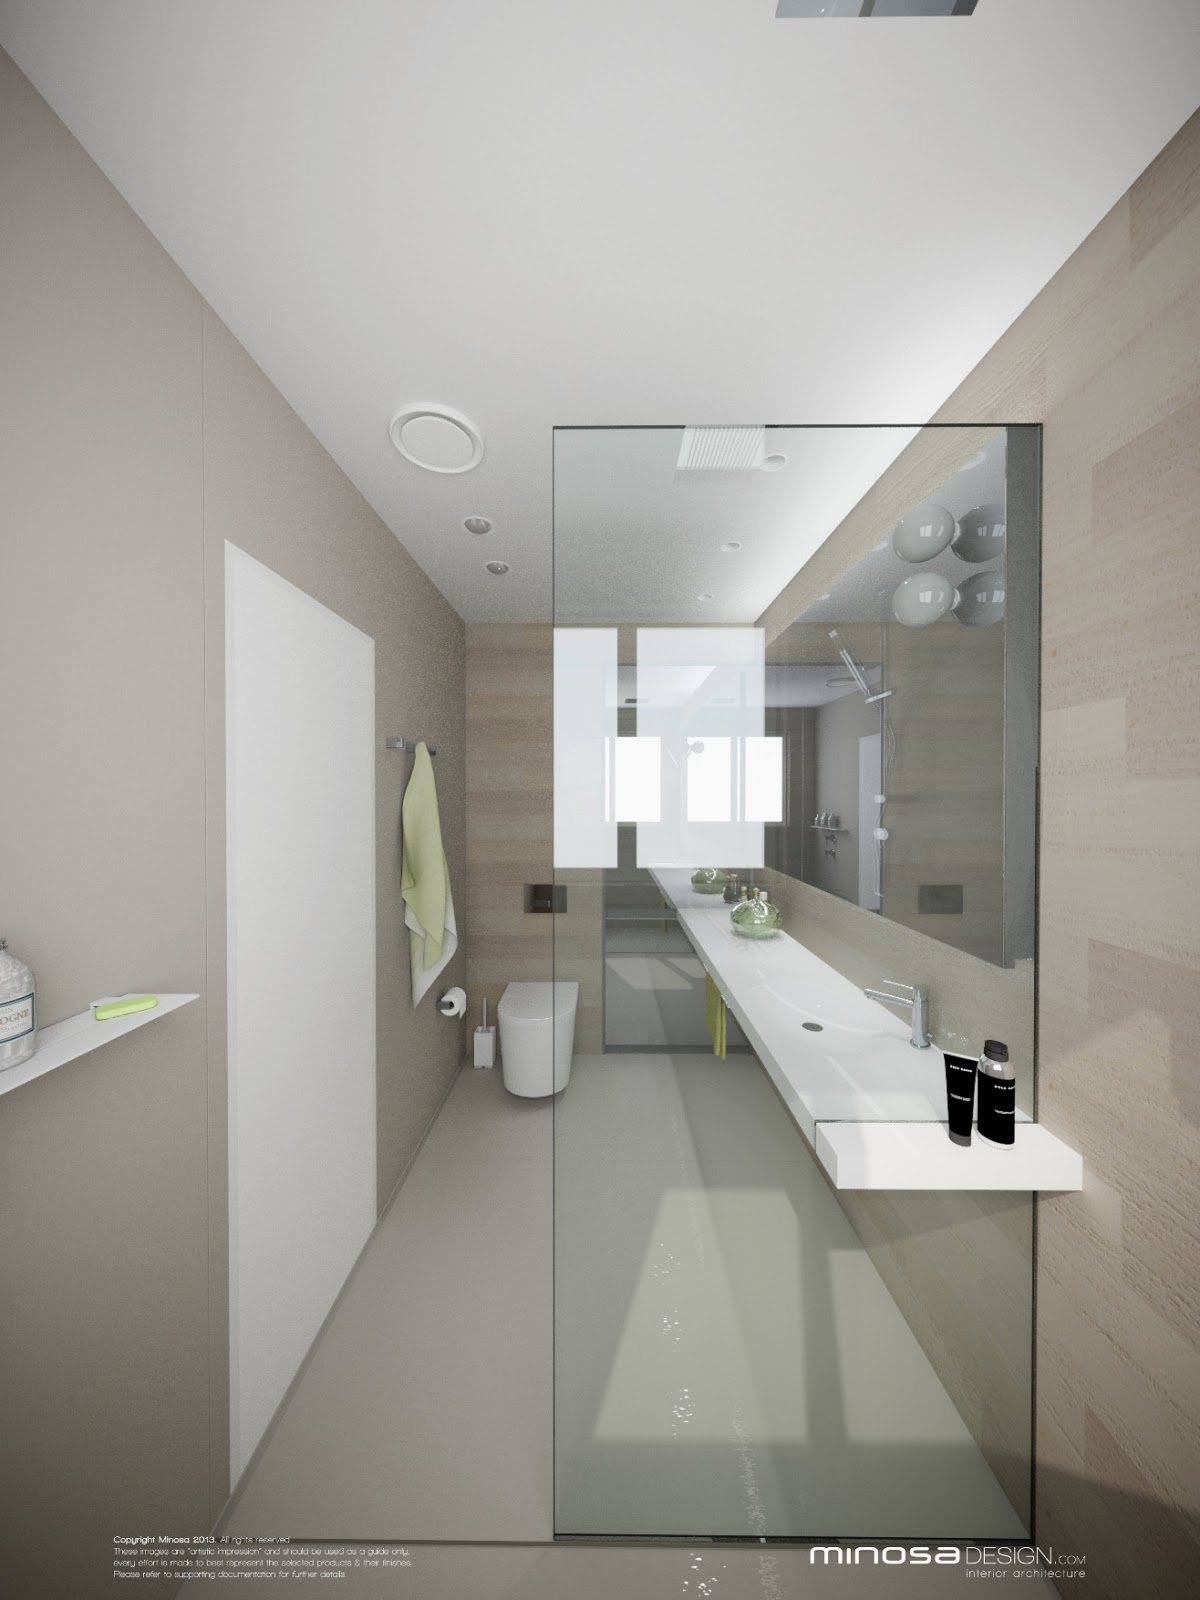 Minosa bringing sexy back the modern bathroom for Bathroom design ideas modern